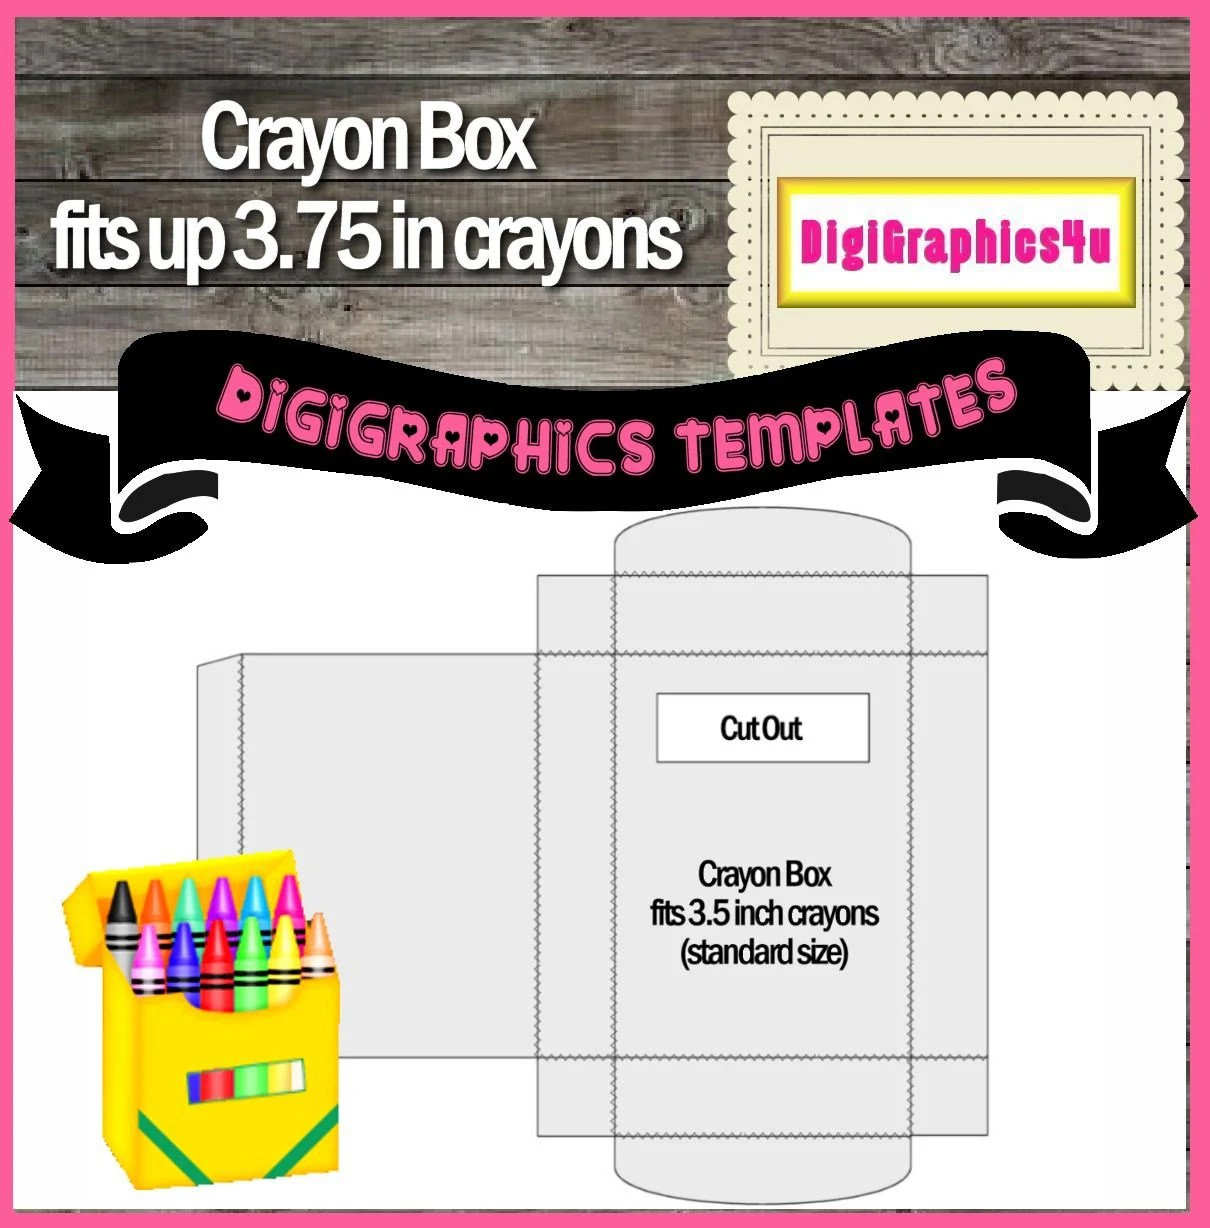 crayon labels template - crayon box template instant download png format digital